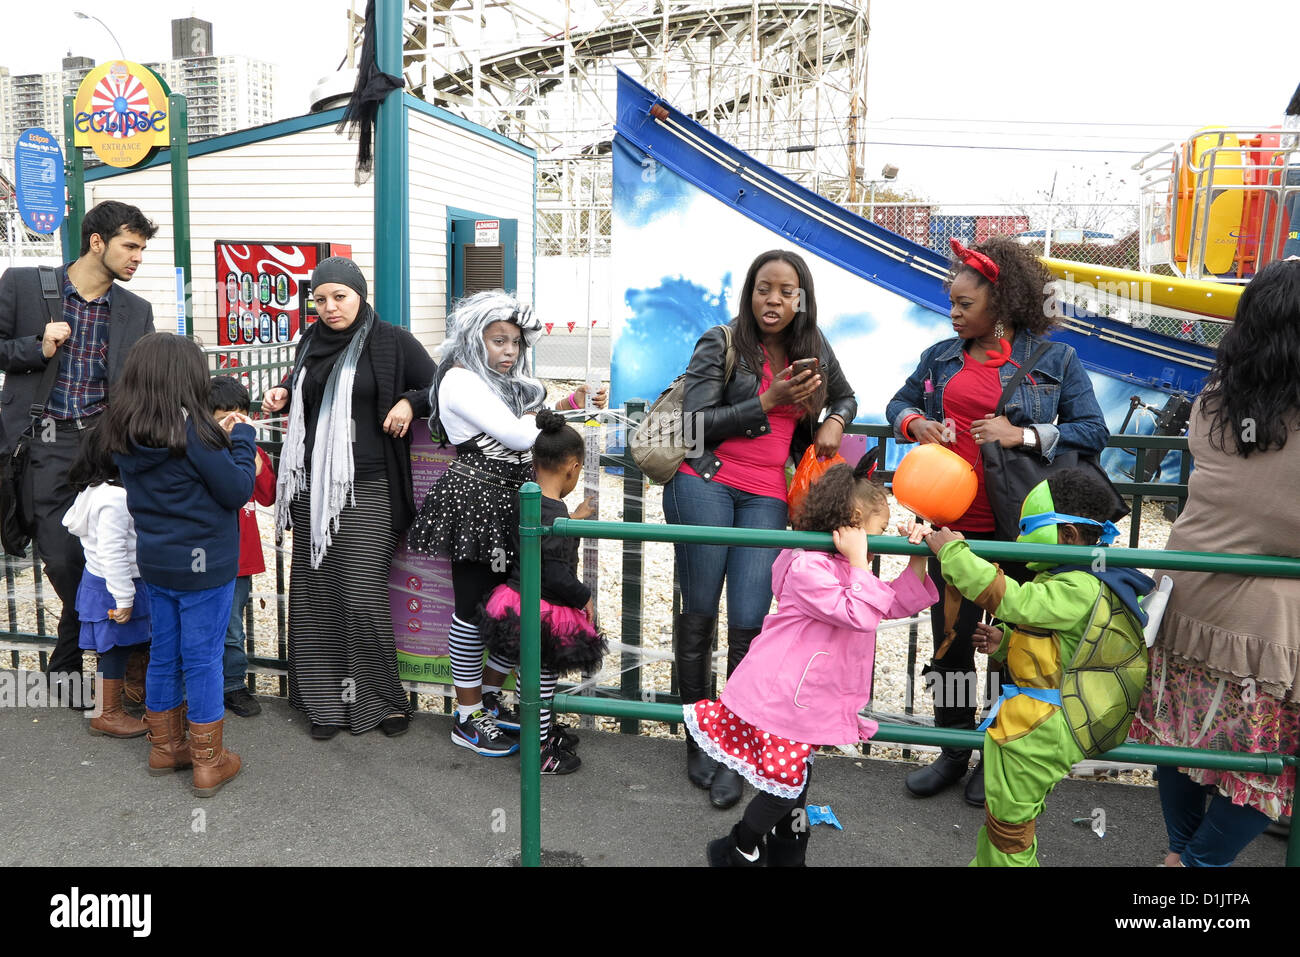 Coney Island Halloween Children's Parade, October 27, 2012. Families wait in line for rides at Luna Park after - Stock Image